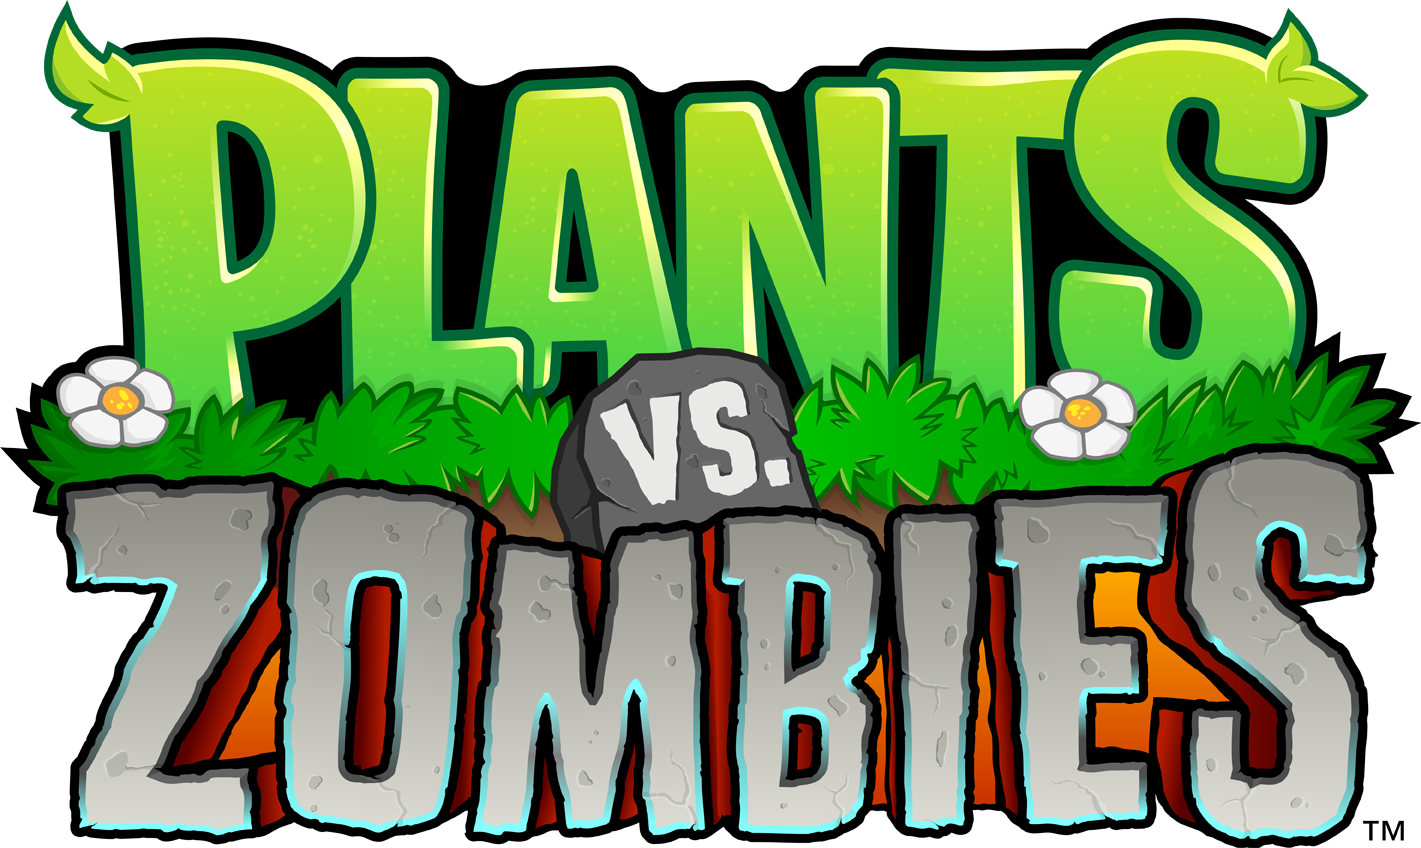 Logo - Plants vs. Zombies